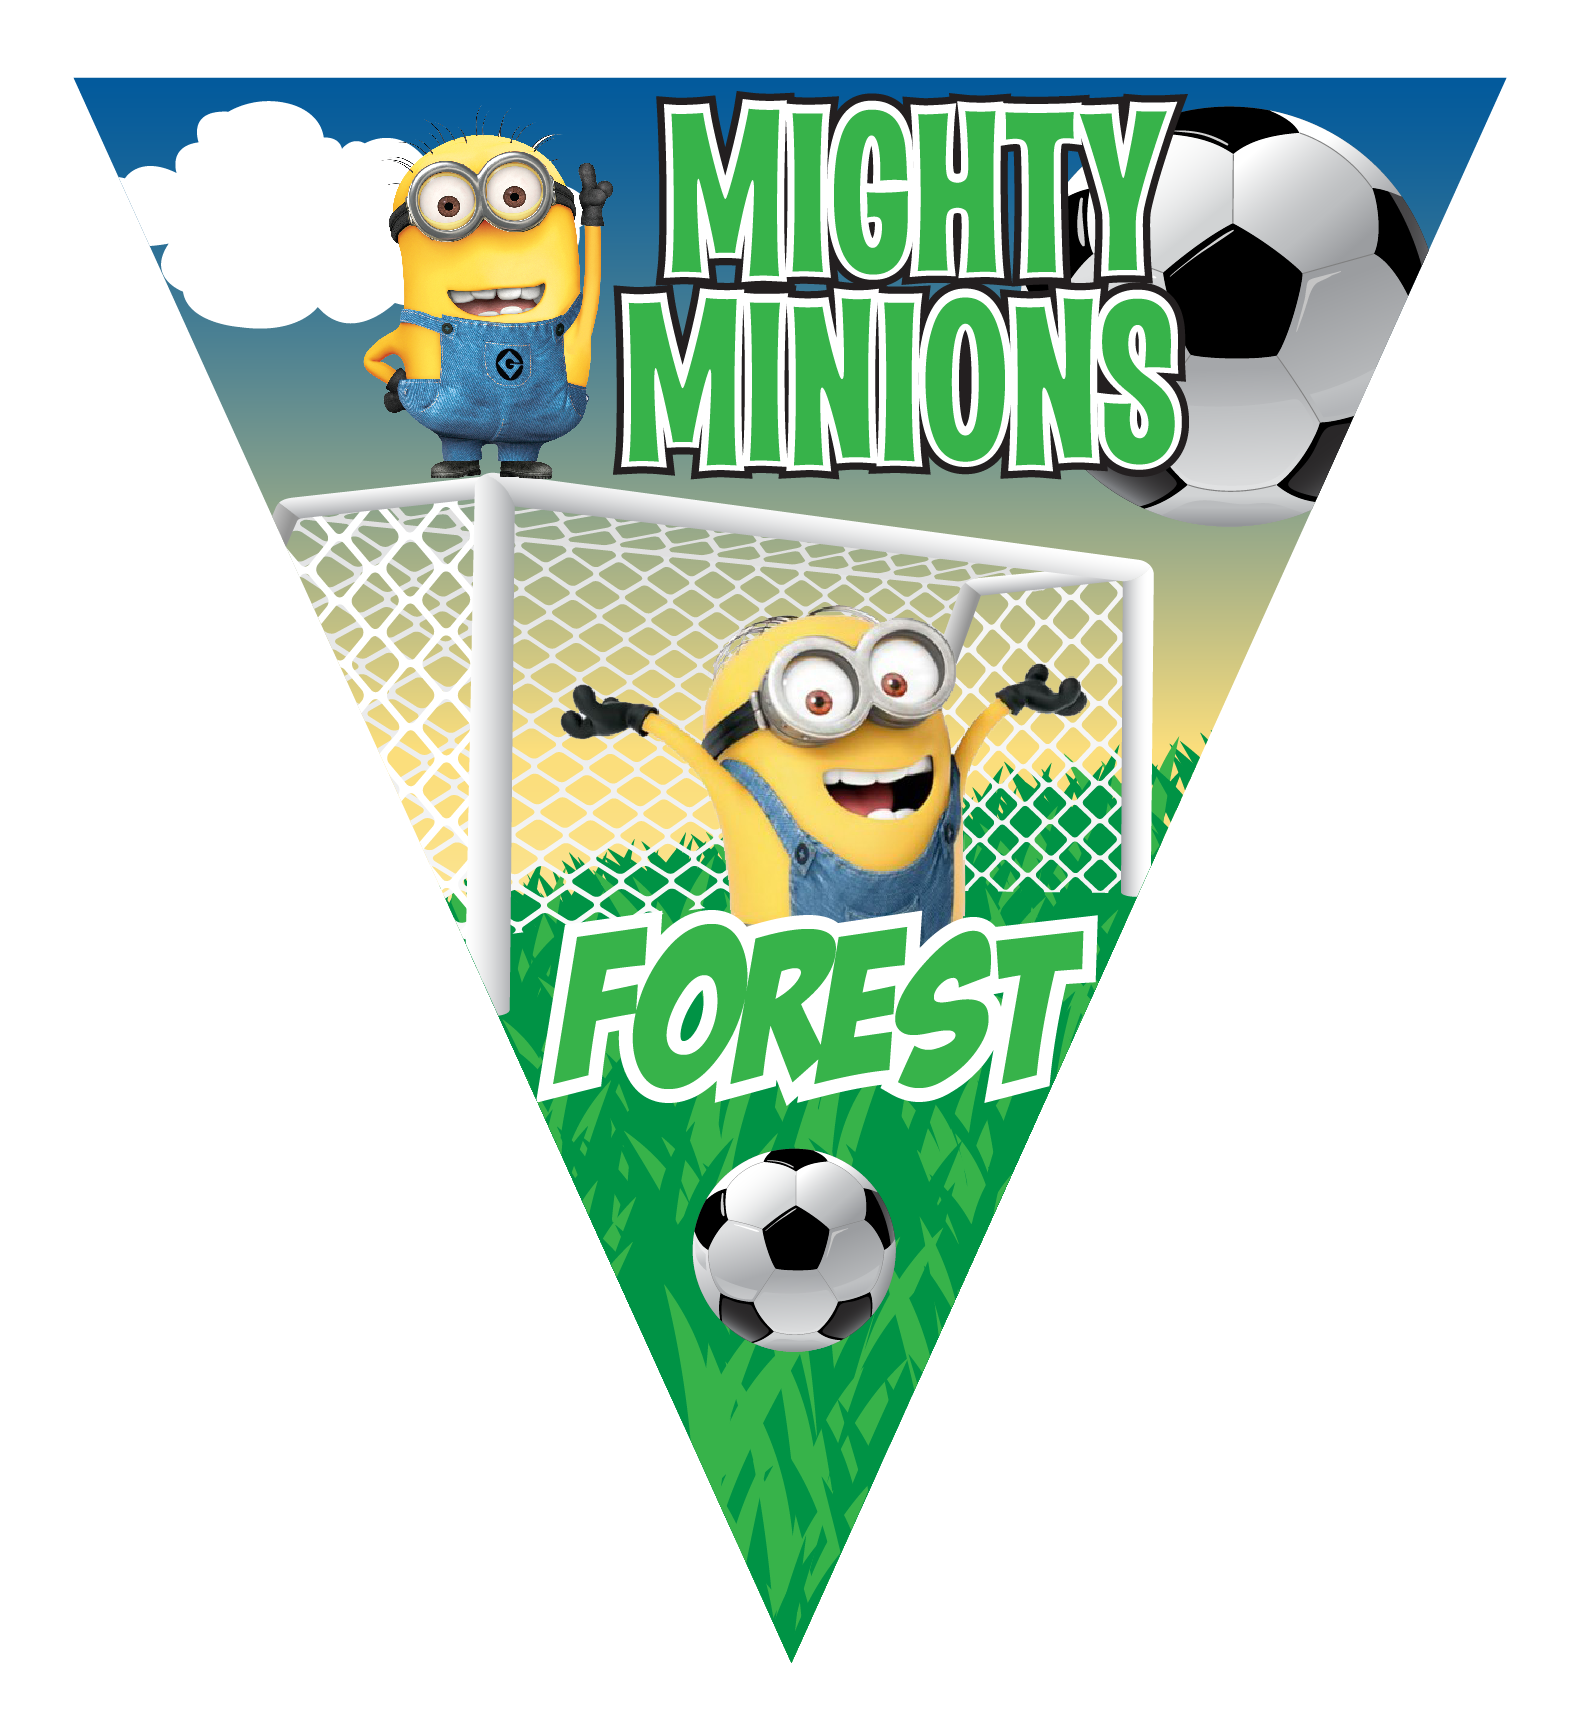 Triangular clipart pennant. Mighty minions triangle individual